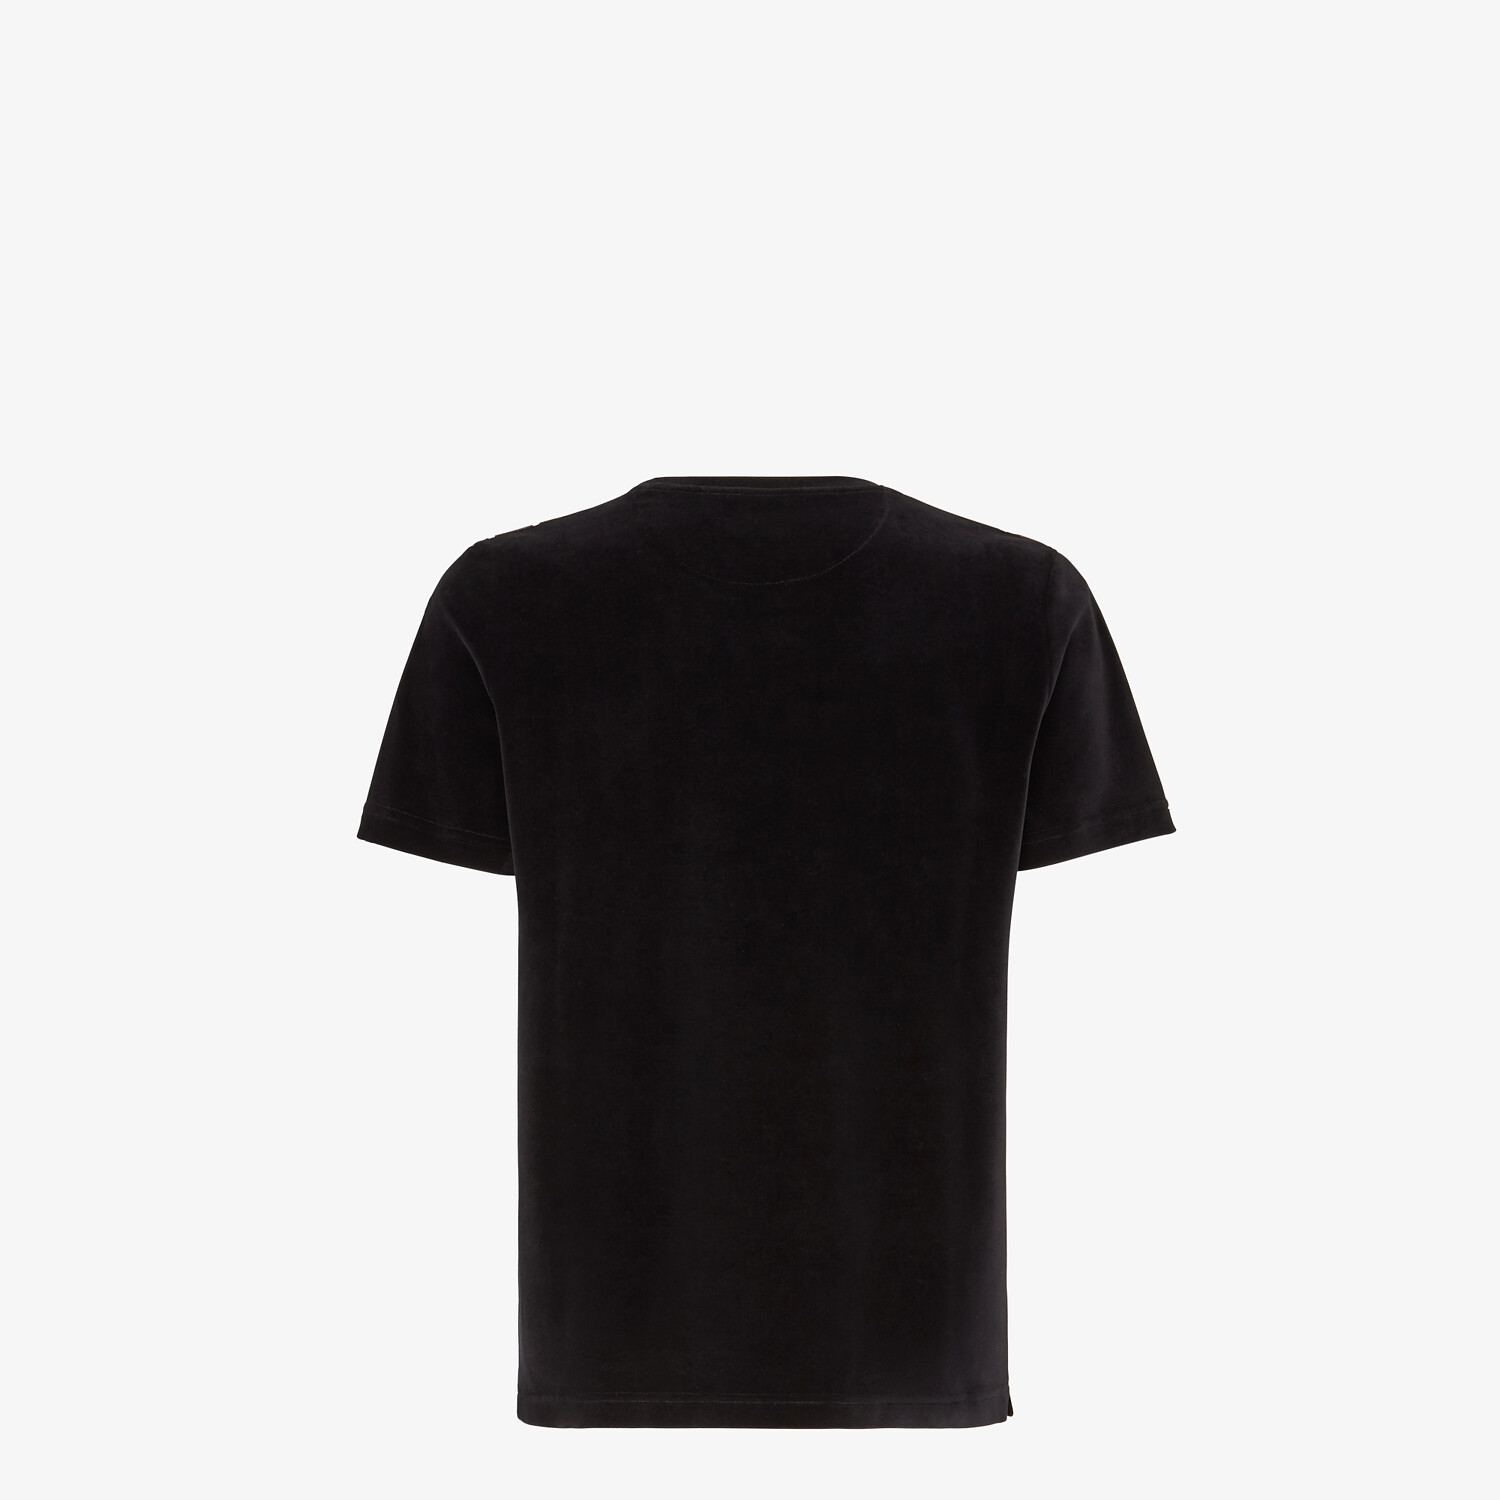 FENDI T-SHIRT - T-shirt from the Lunar New Year Limited Capsule Collection - view 2 detail